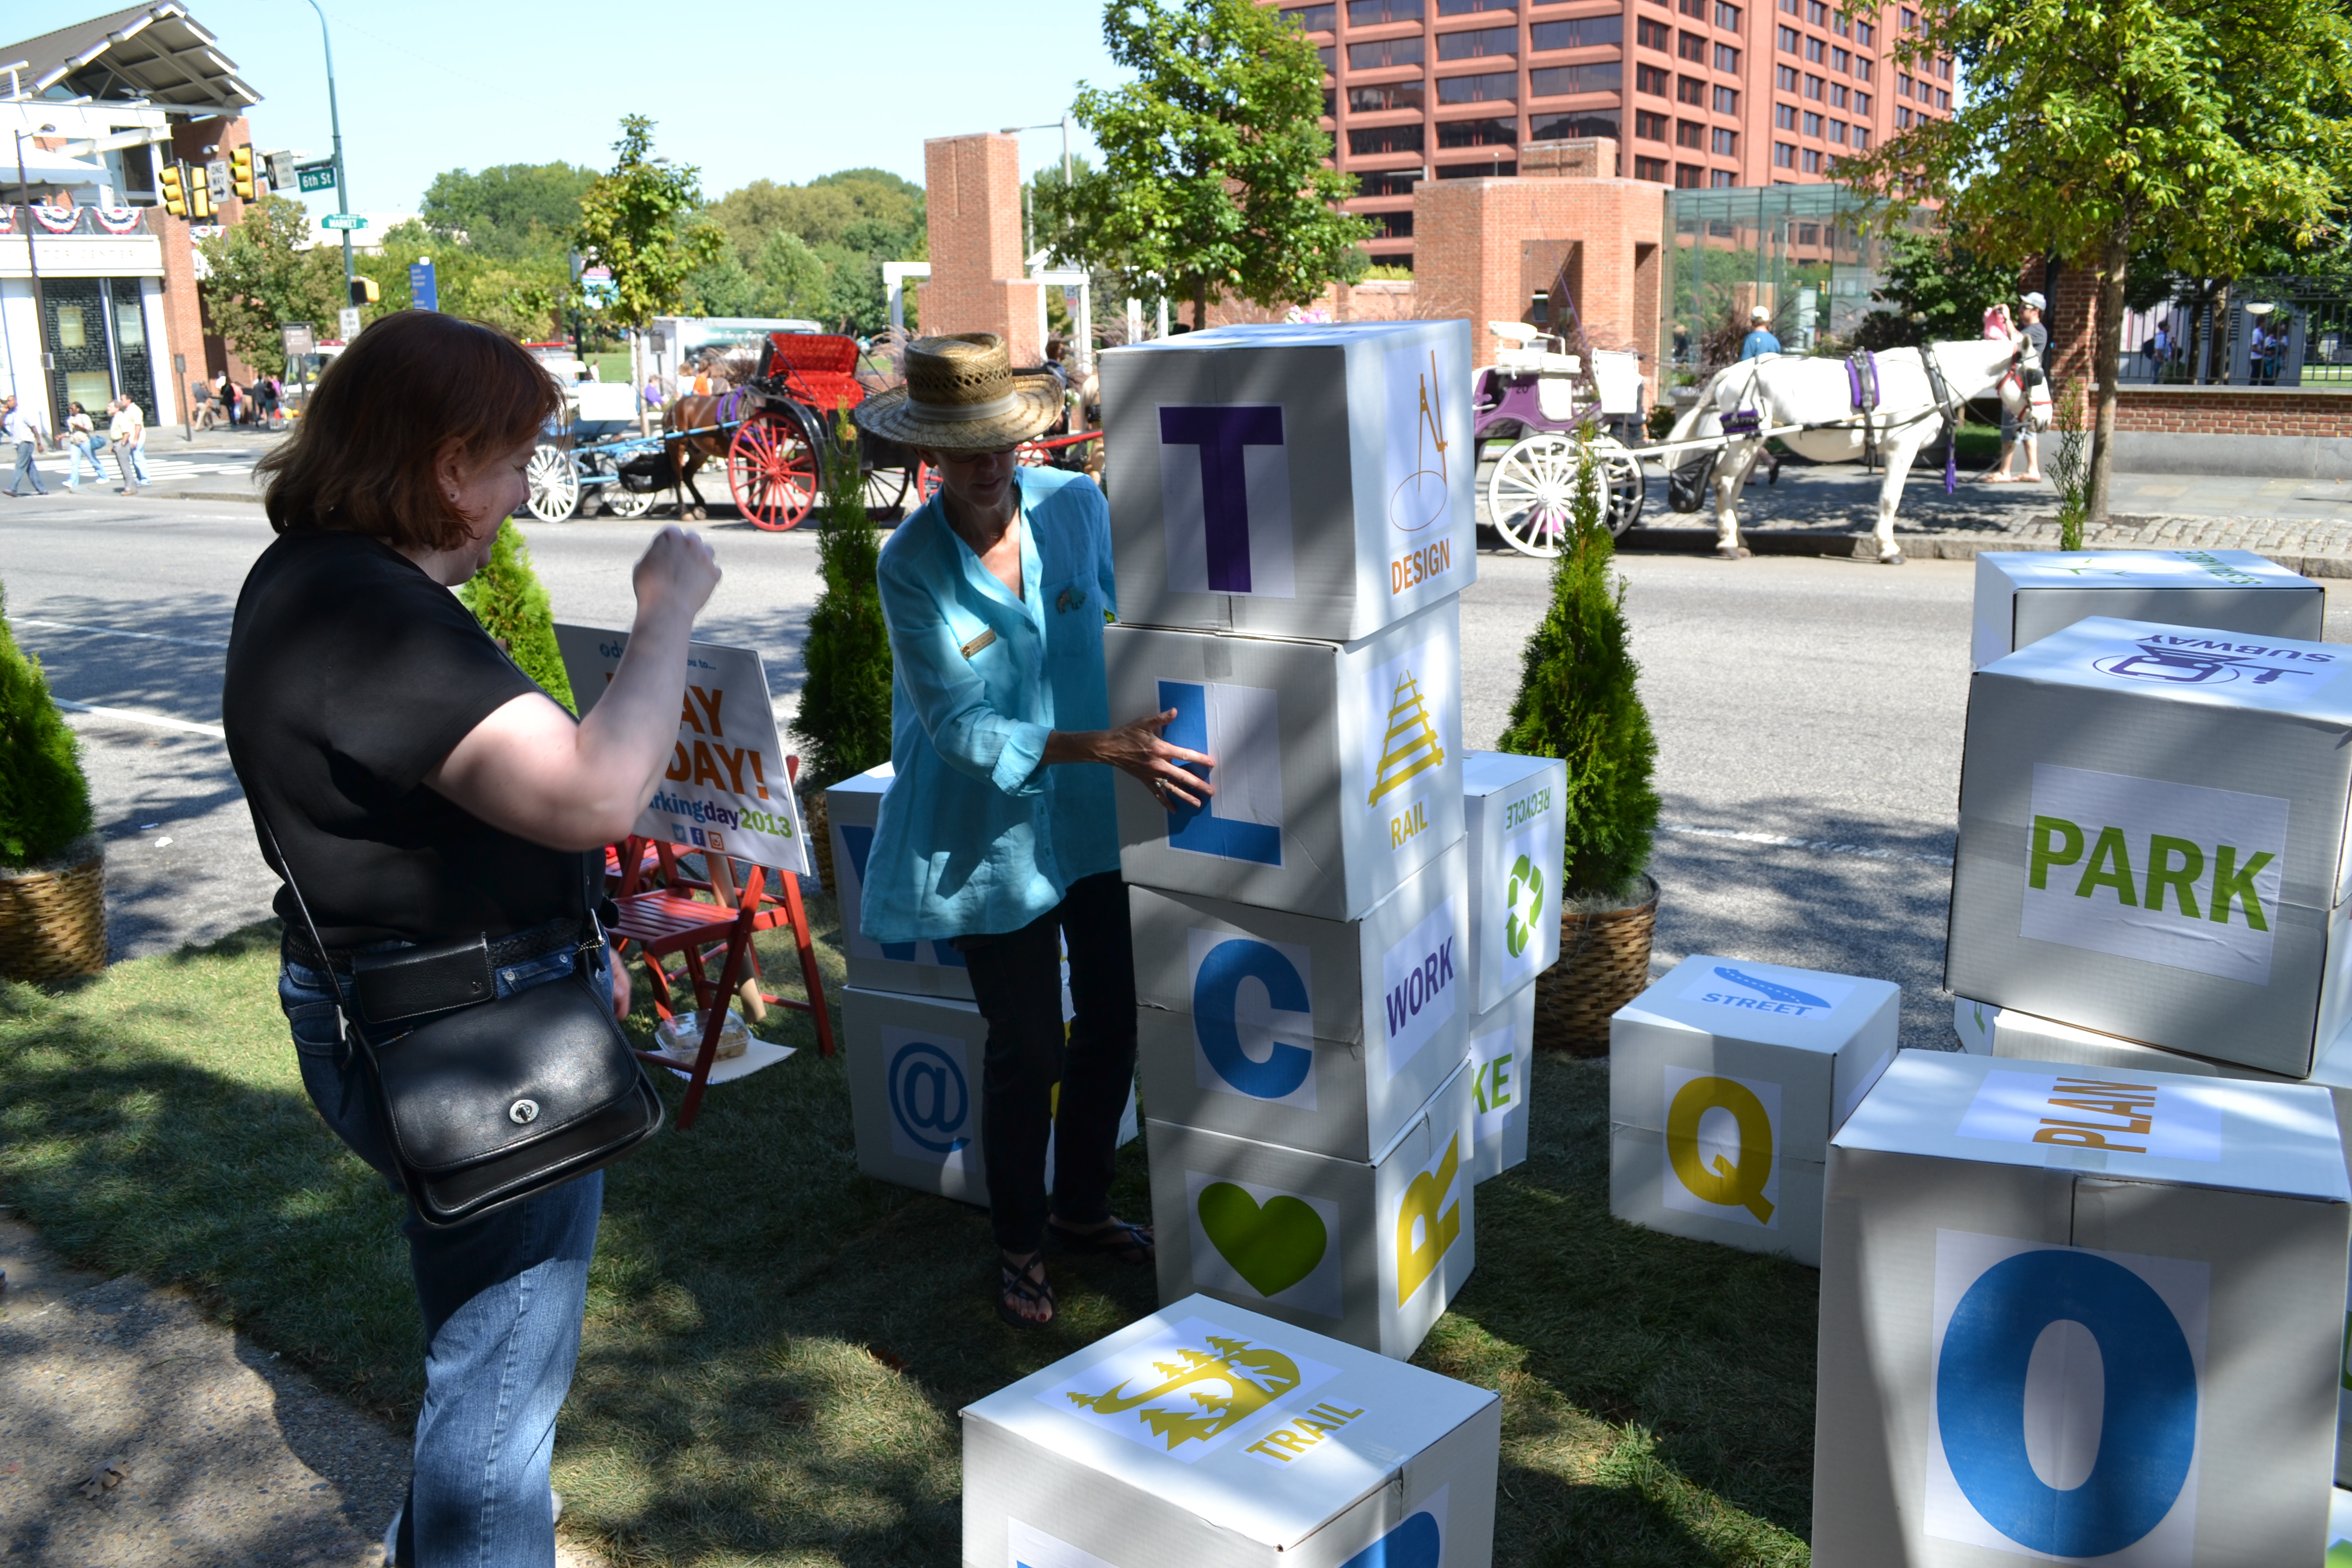 Park(ing) Day: Delaware Valley Regional Planning Commission